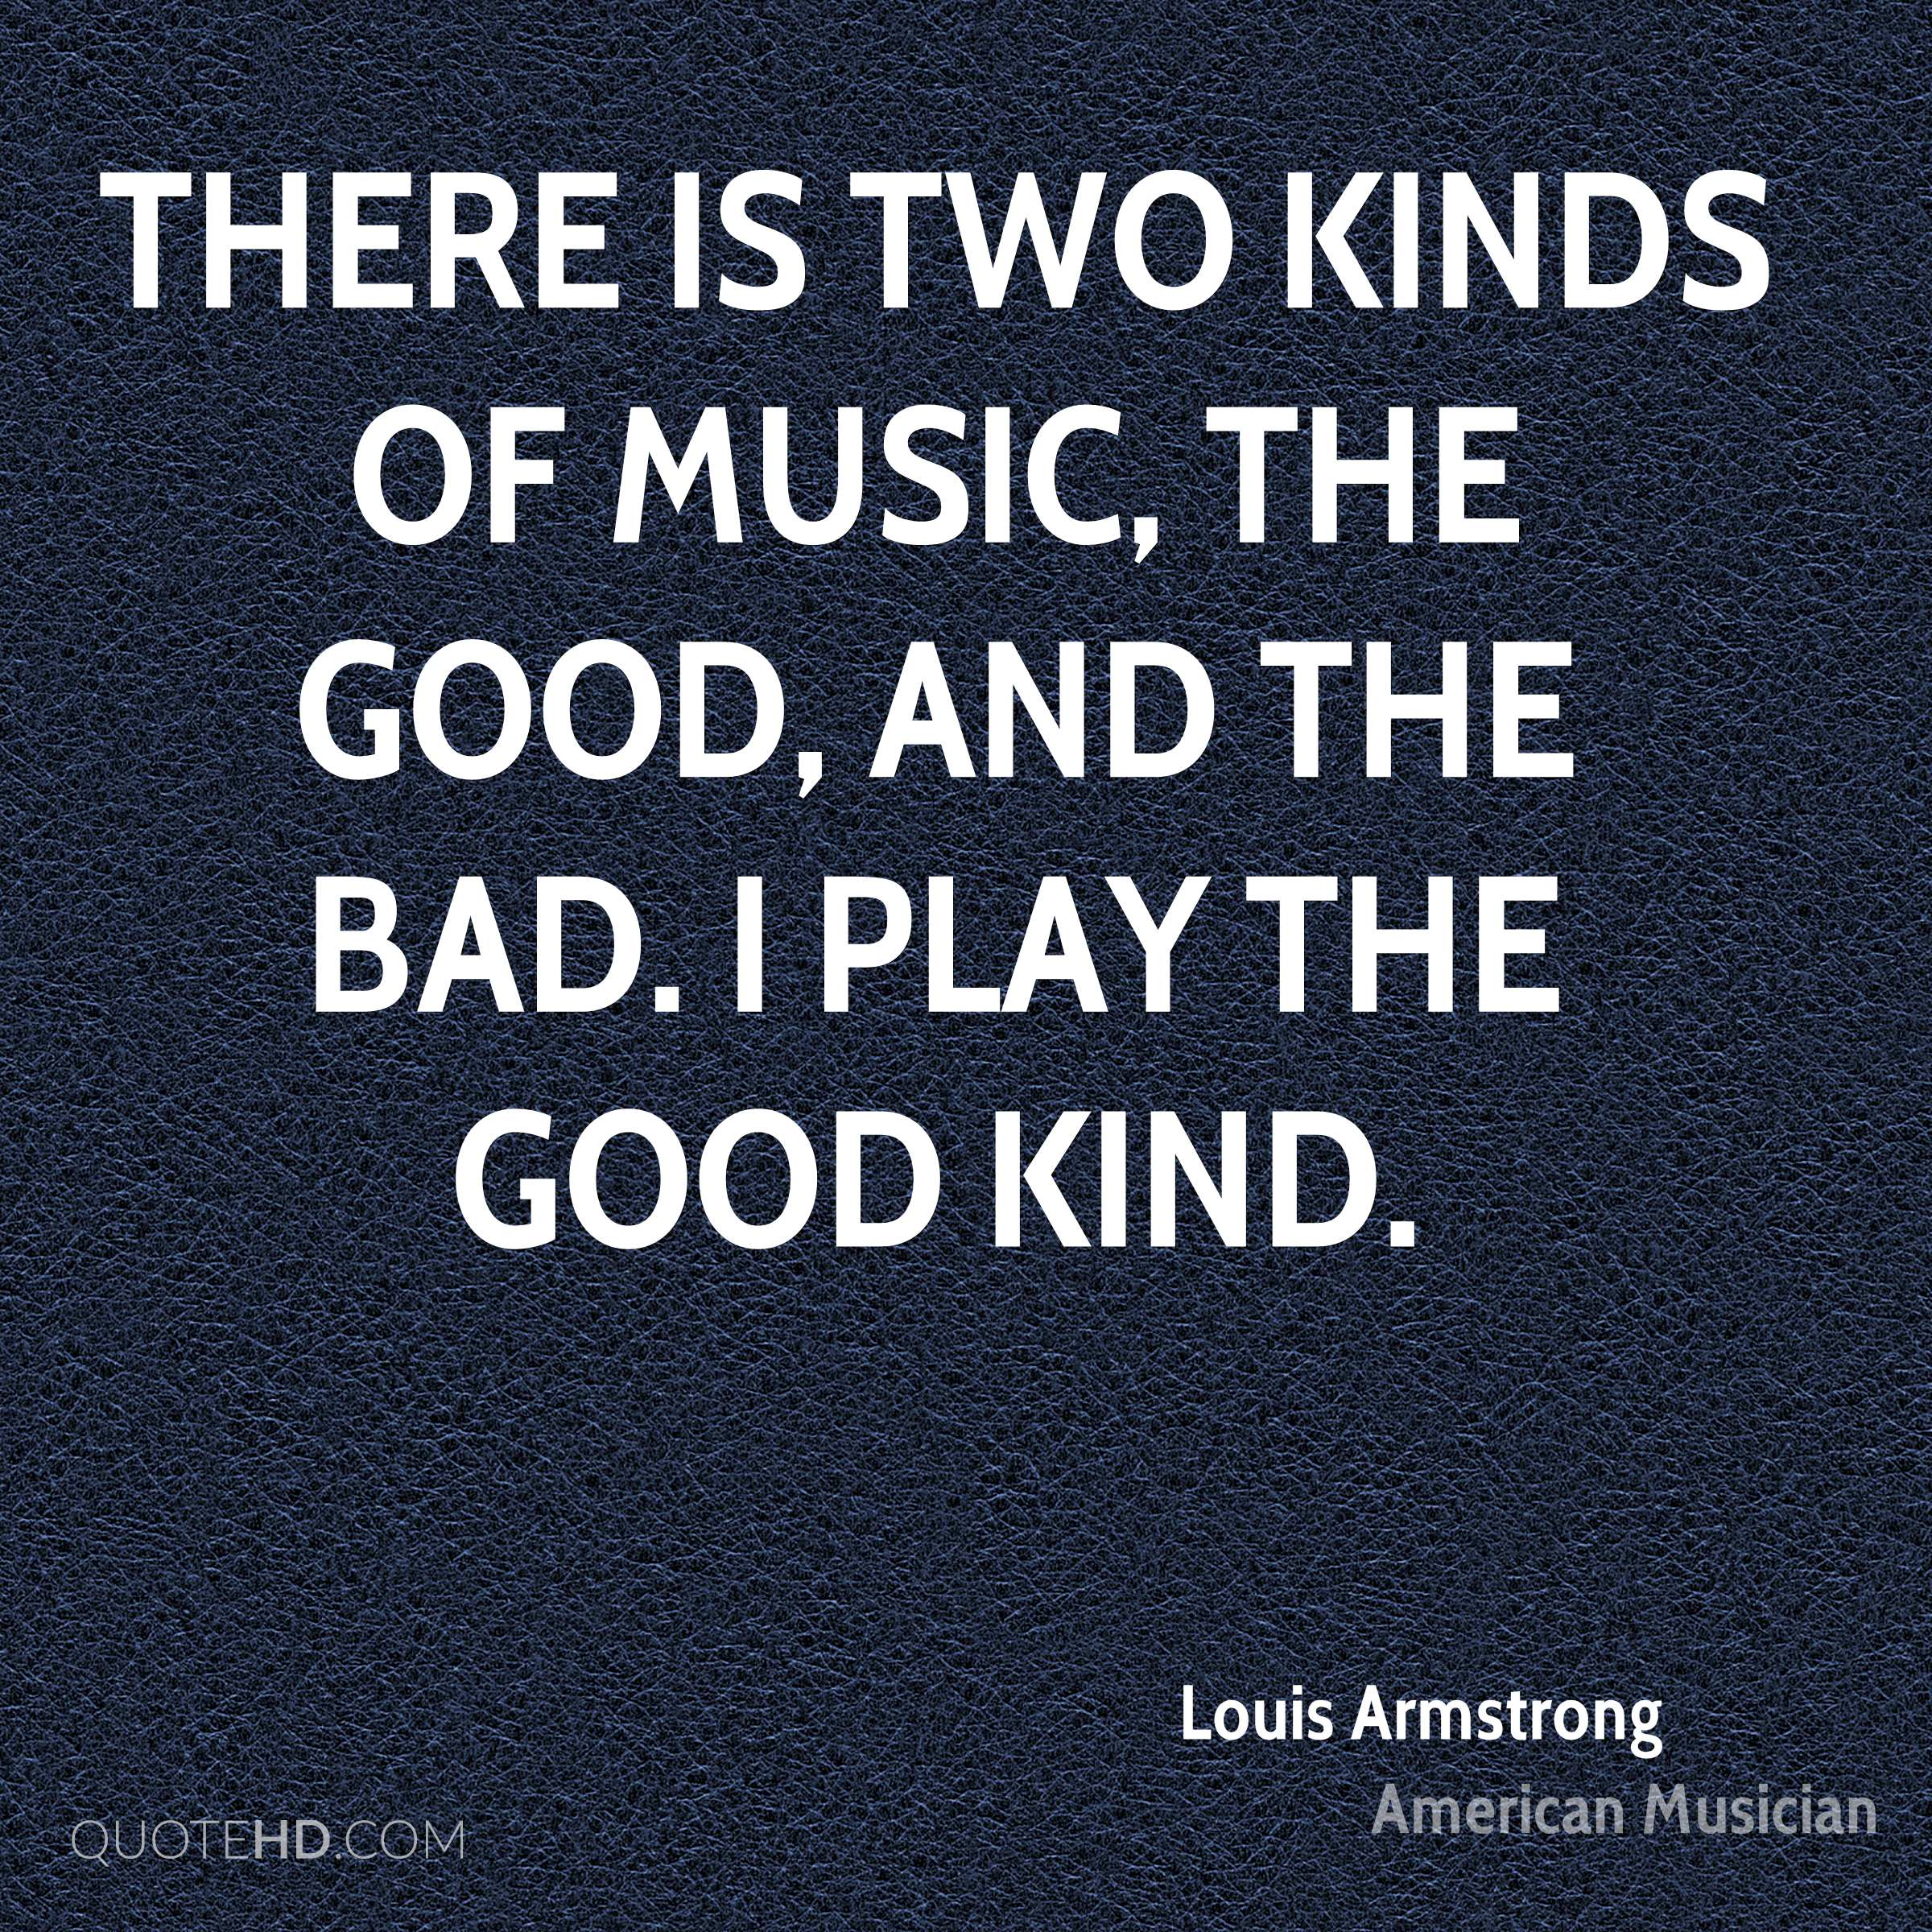 There is two kinds of music, the good, and the bad. I play the good kind.